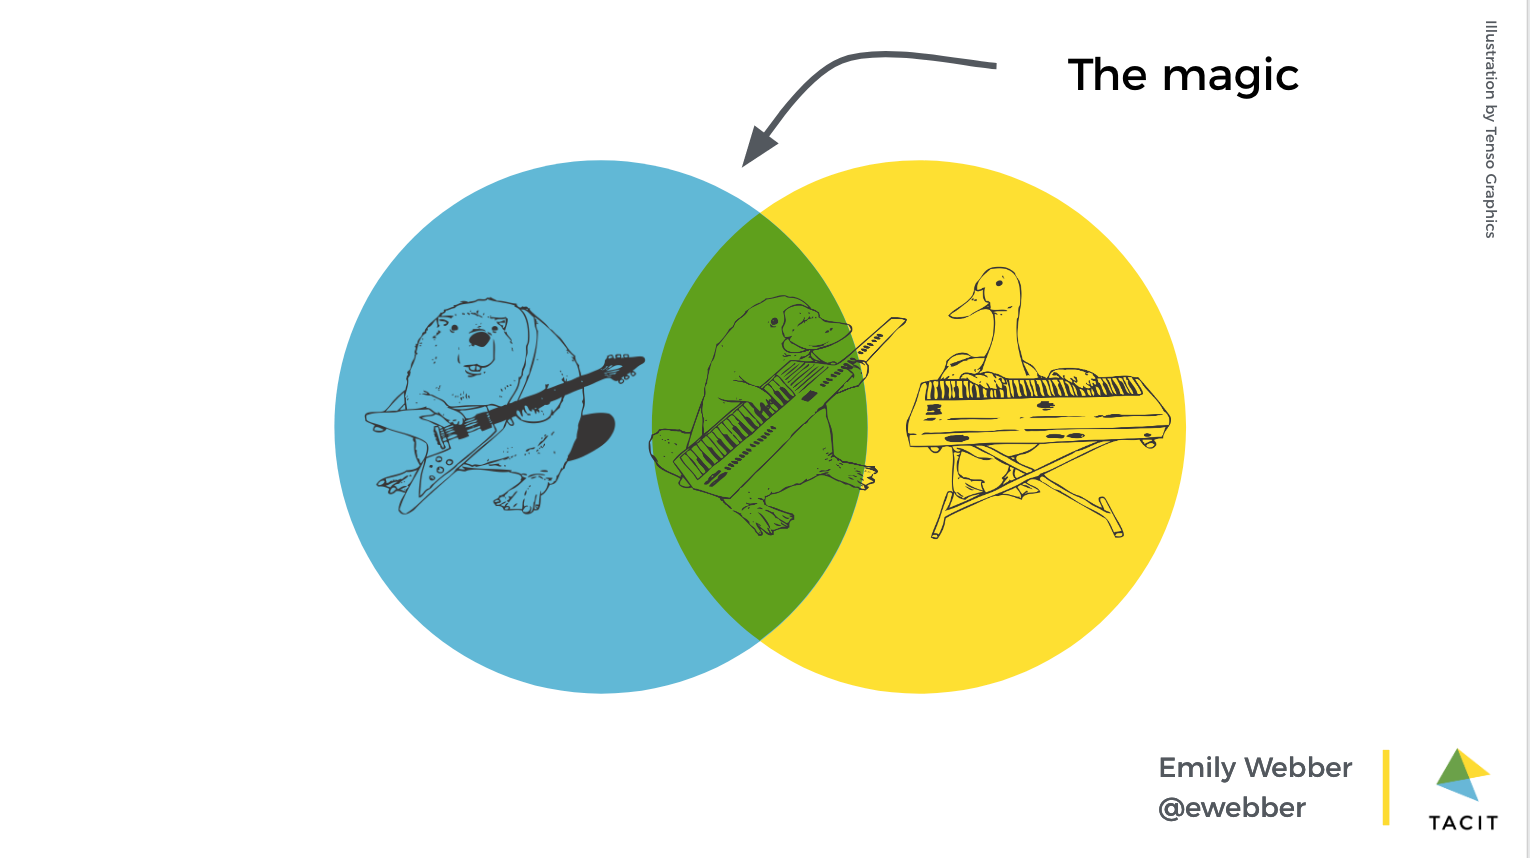 A venn diagram showing a beaver with a guitar and a duck with a keyboard creating a duckbilled platypus playing a keytar